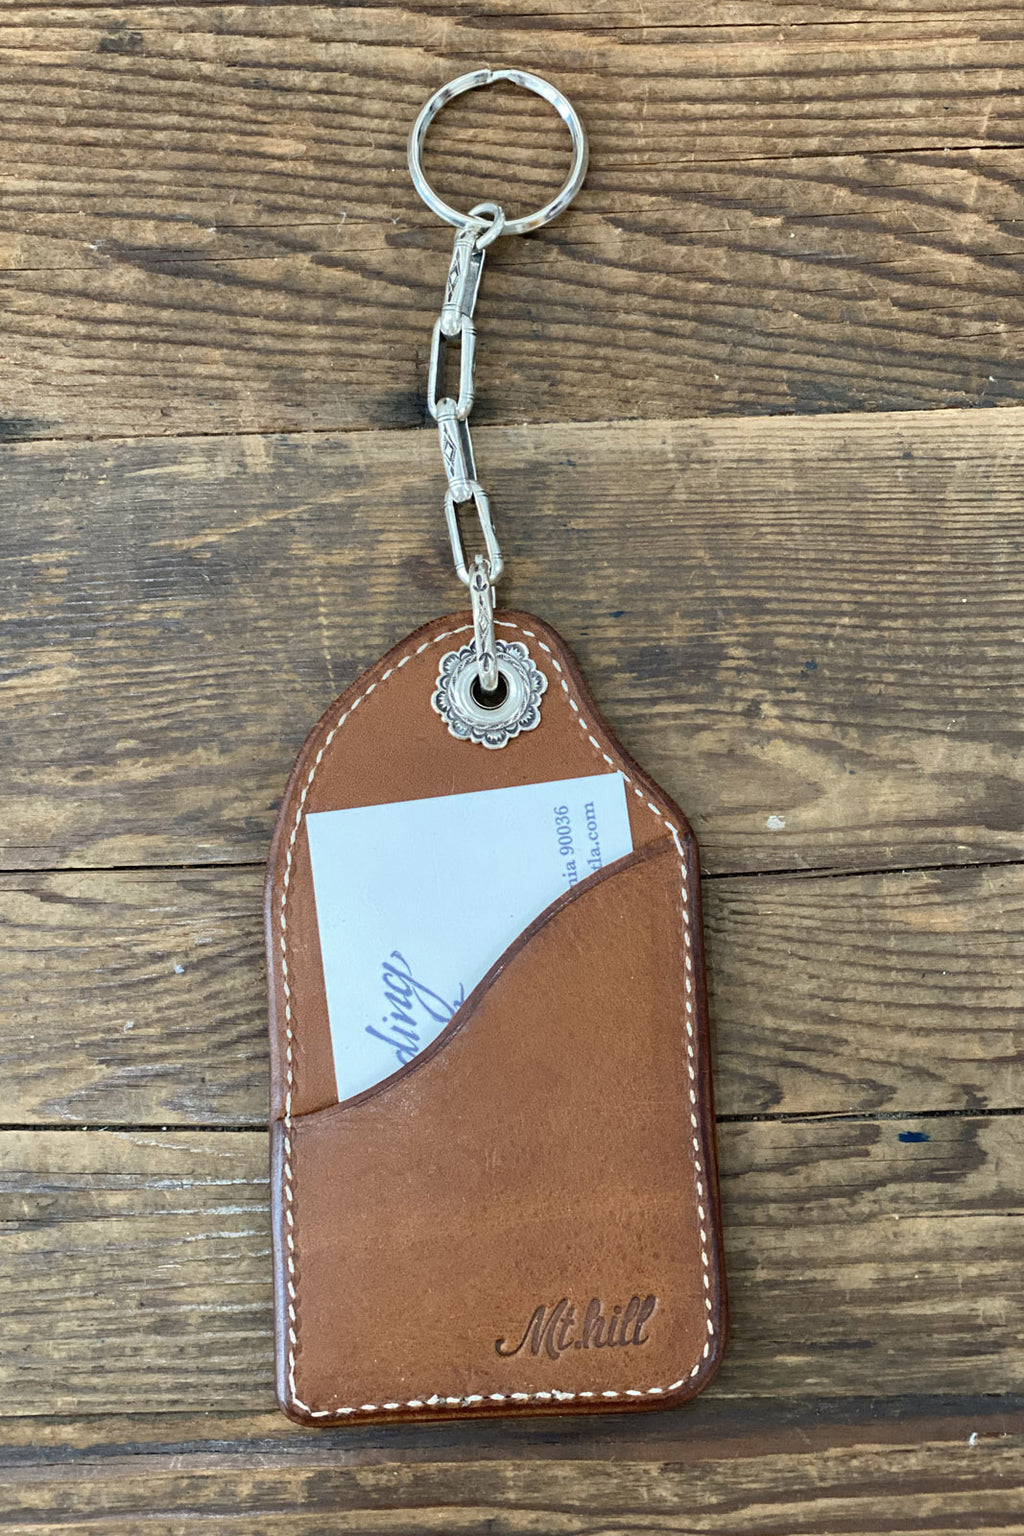 Mt. Hill Leather Keychain/Cardholder in Tan